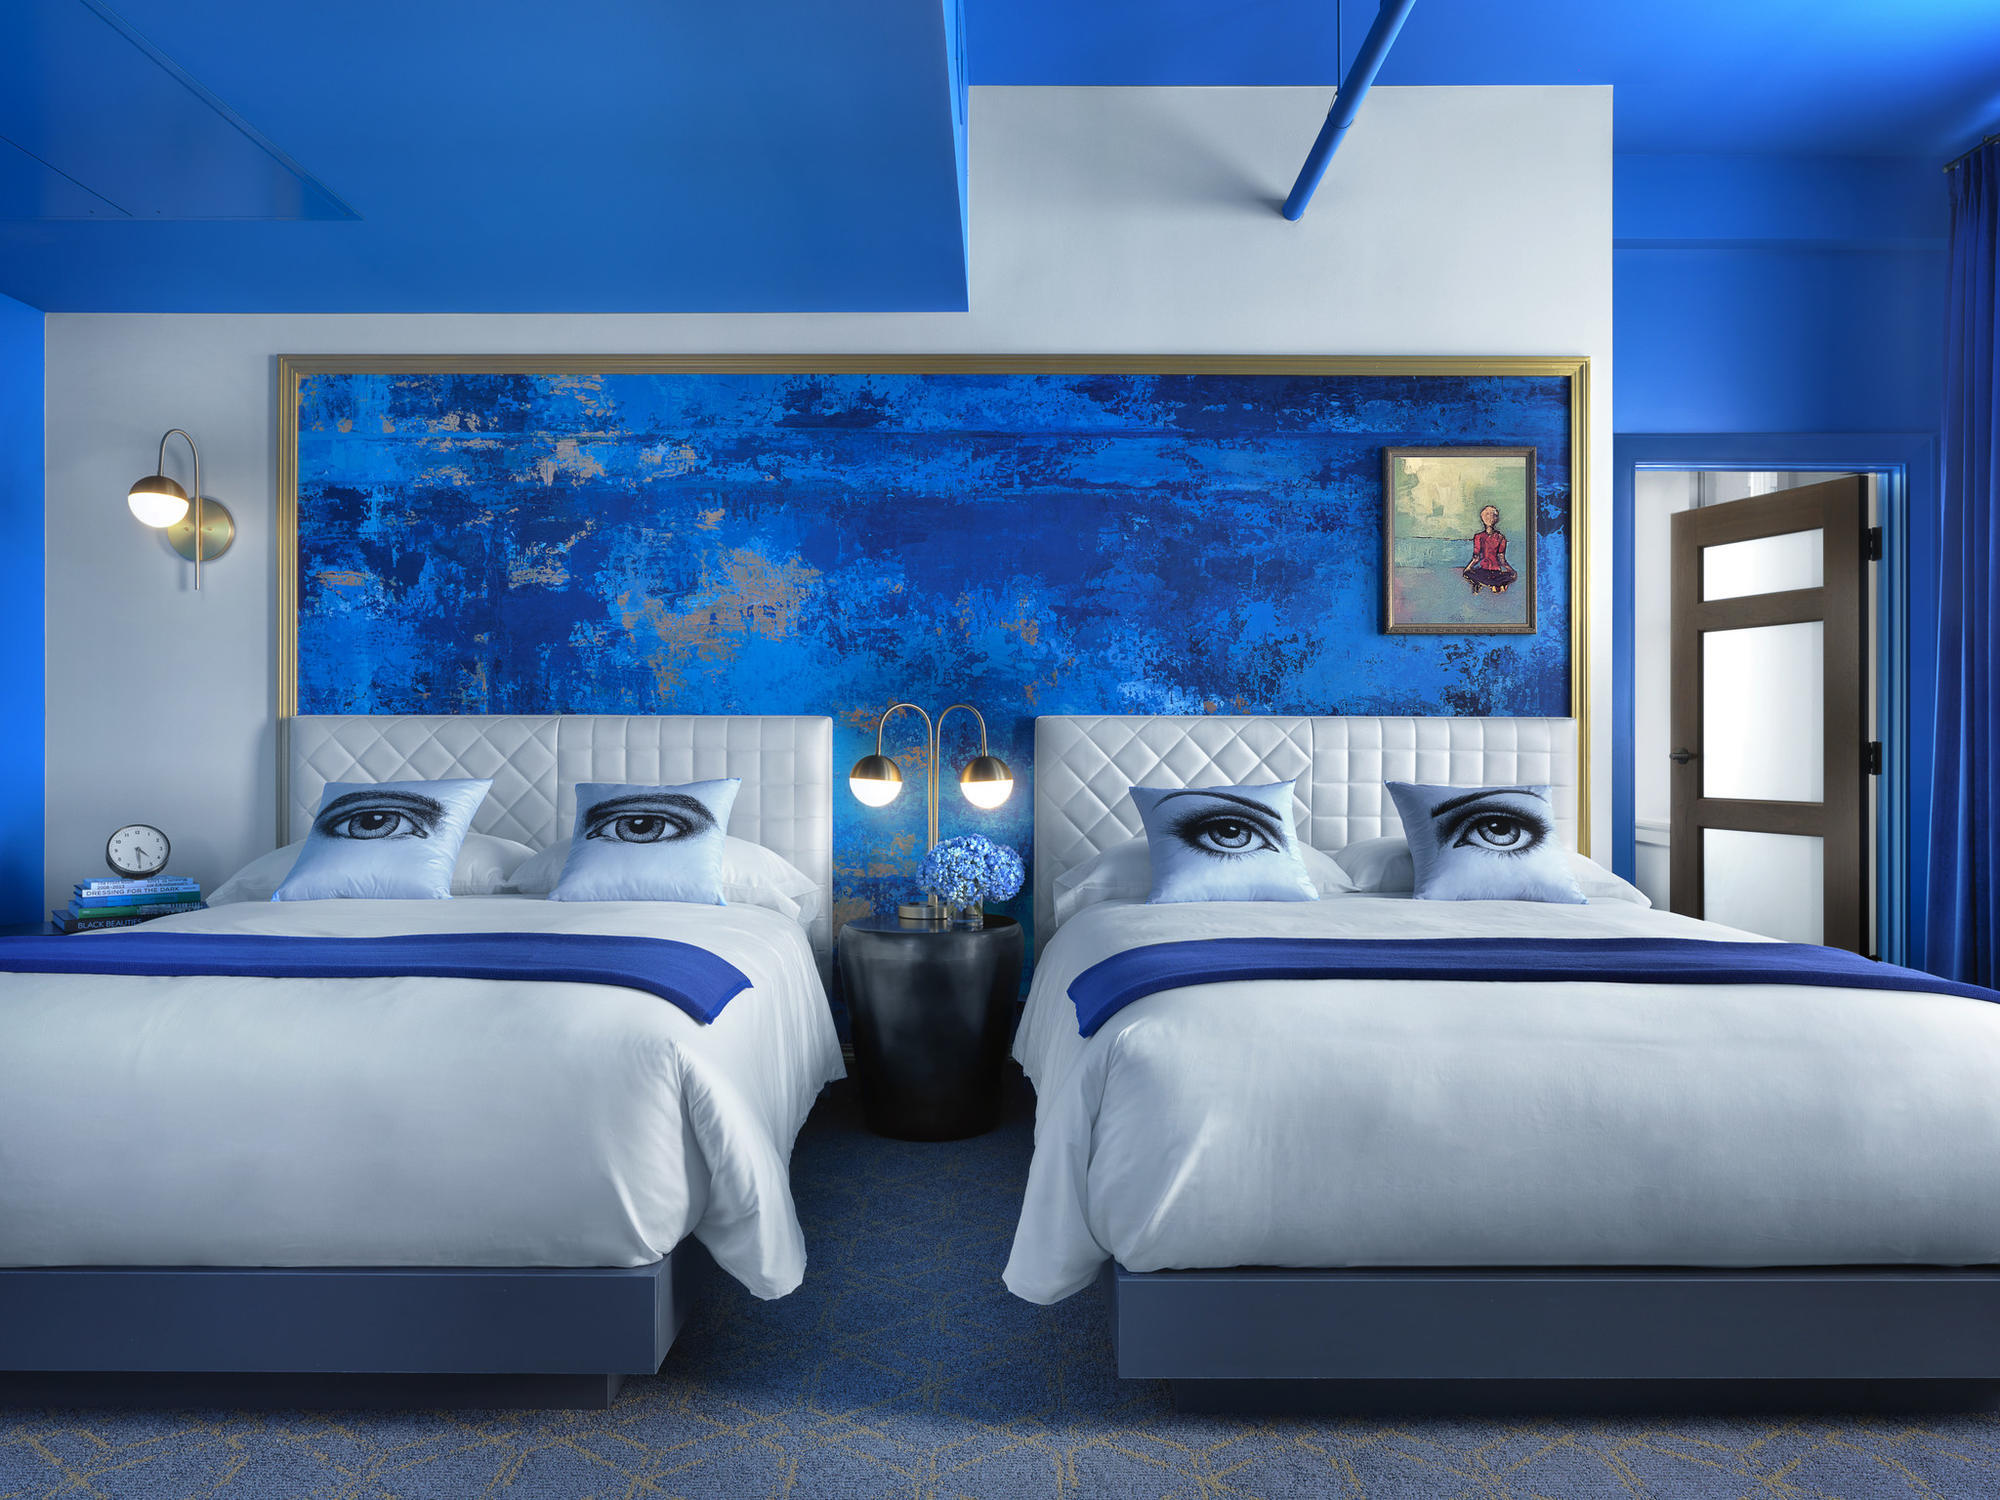 New Hotel In St Louis Aims To Match Room Color To Guest S Mood